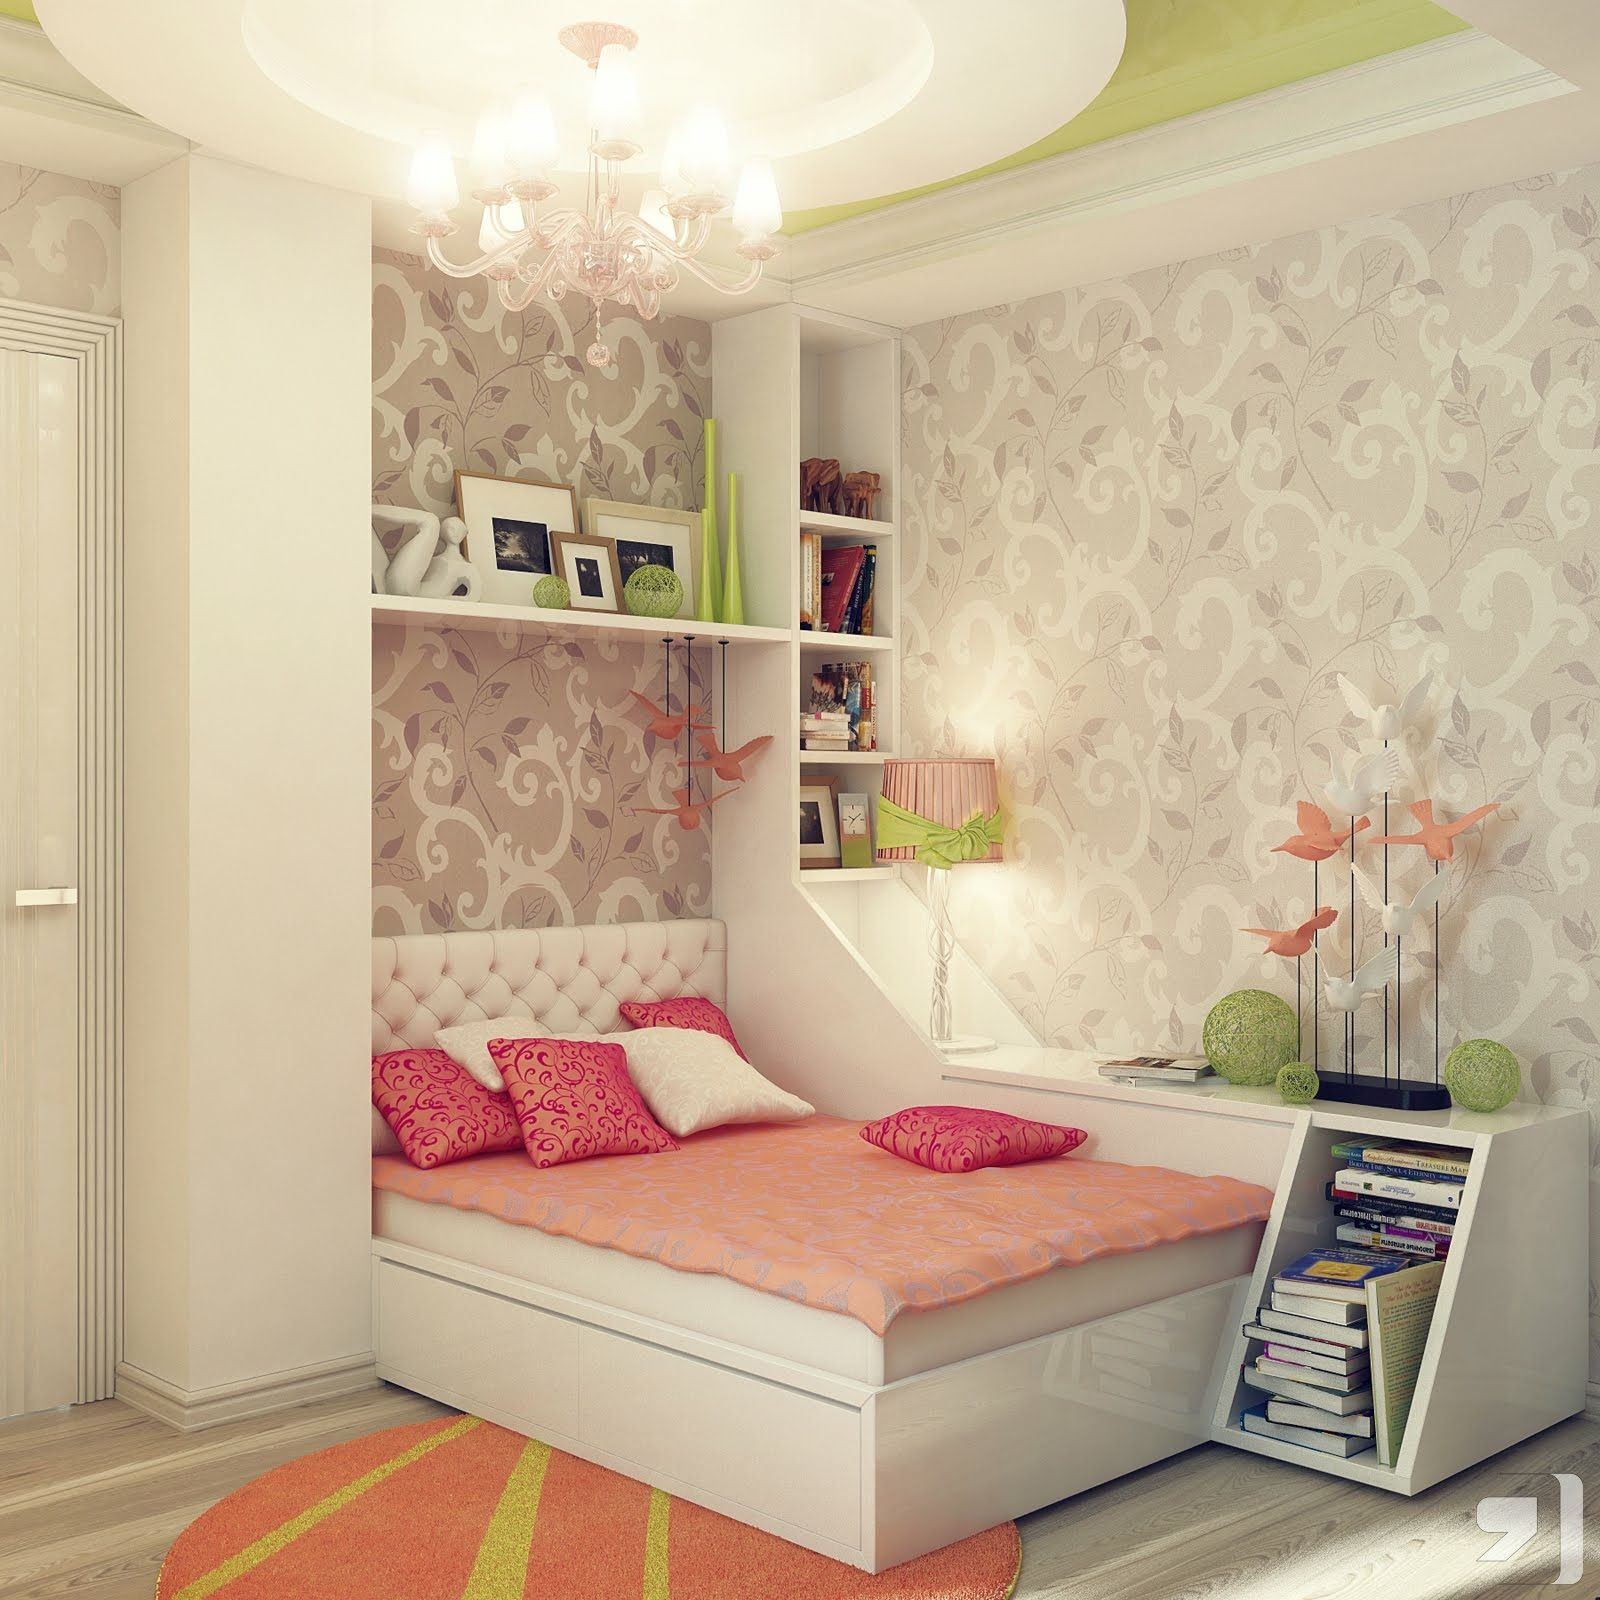 Bedroom decor ideas for girls - Teen Room Peach Green Gray Girls Bedroom Decor